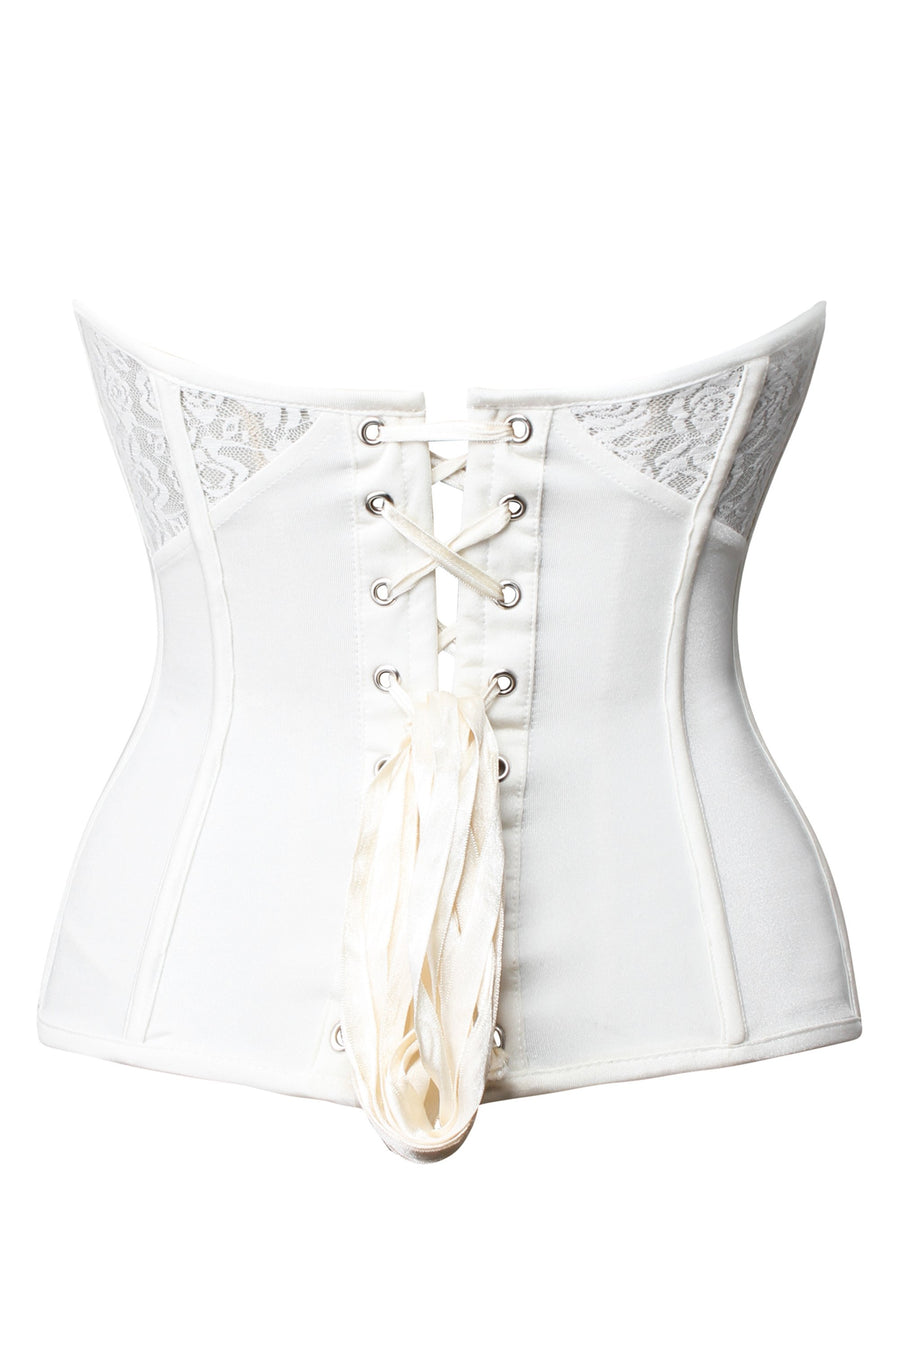 Low Back Corset Shapewear with Lace